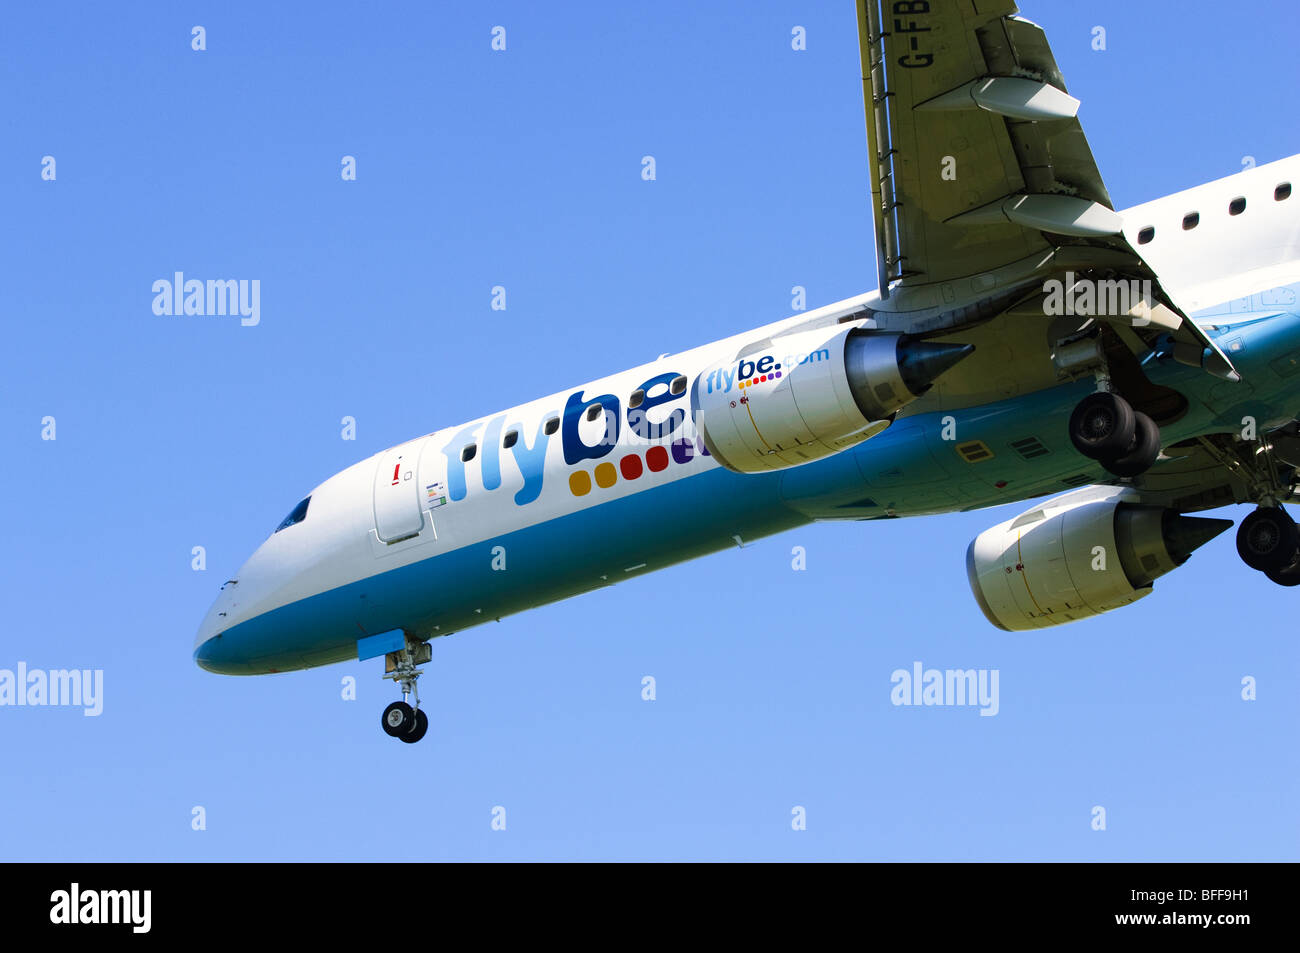 Embraer ERJ-190 operated by Flybe on approach for landing at Birmingham Airport - Stock Image